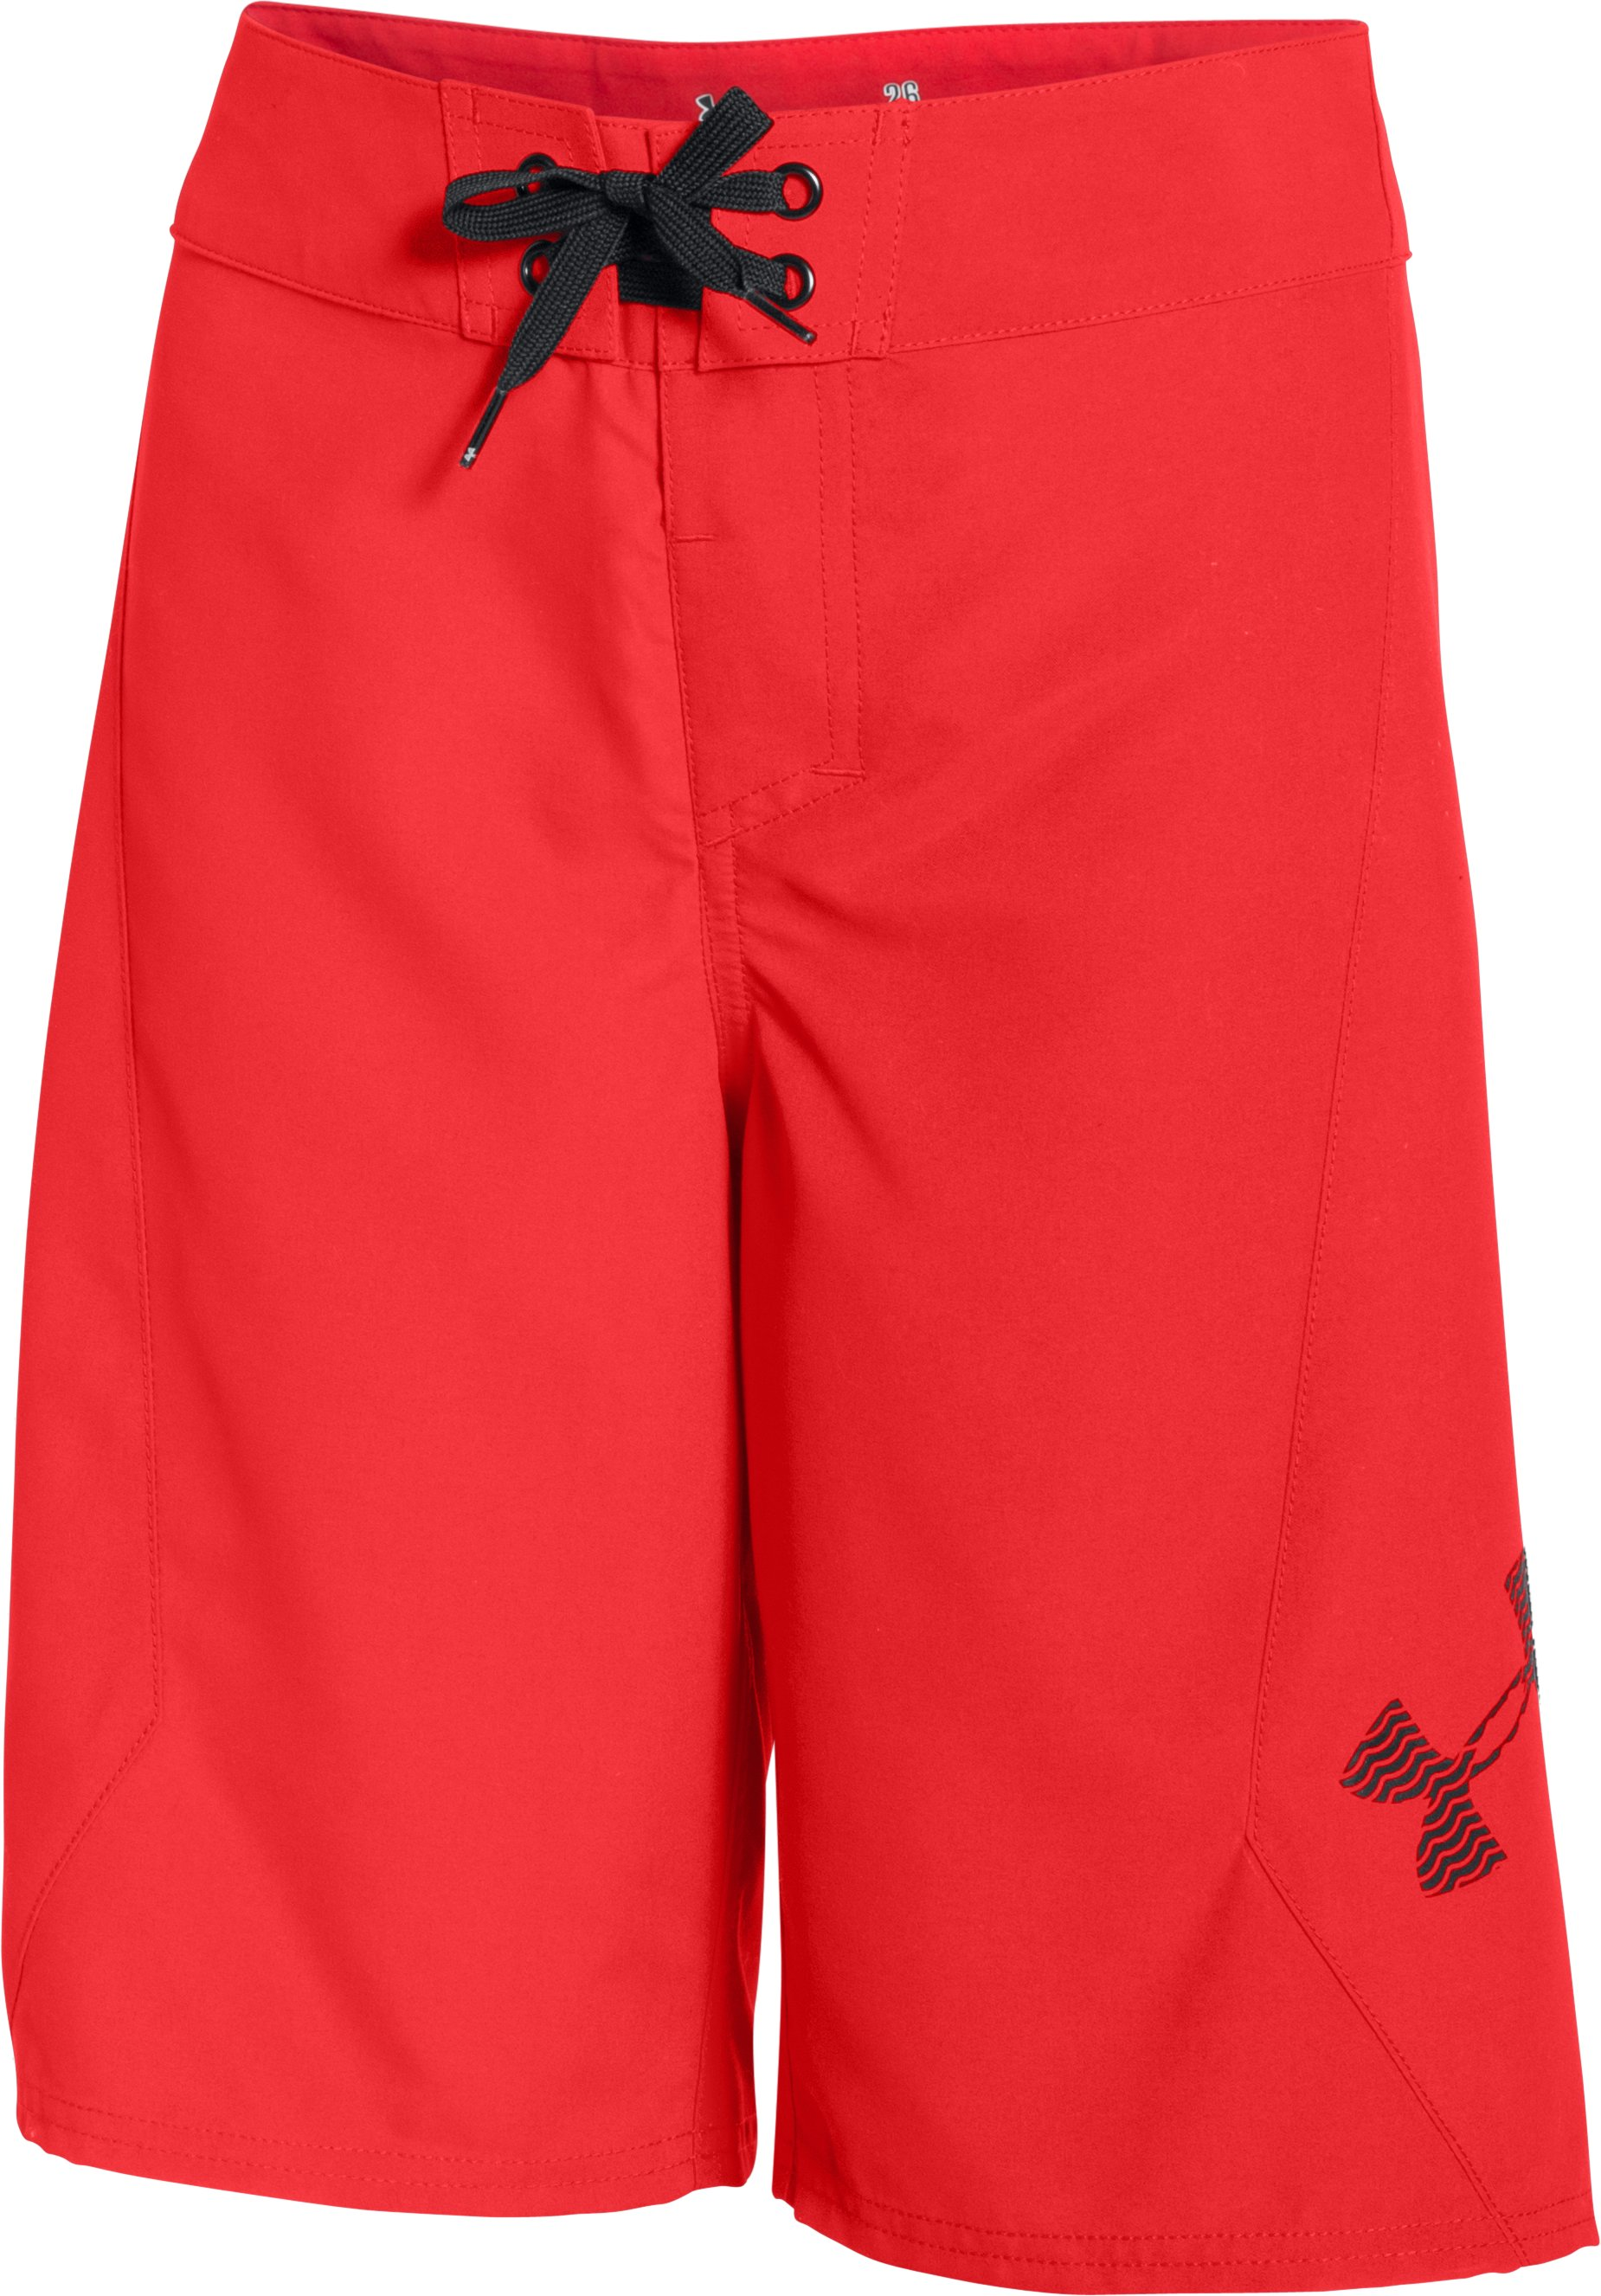 Boys' UA Shorebreak Boardshorts, ROCKET RED